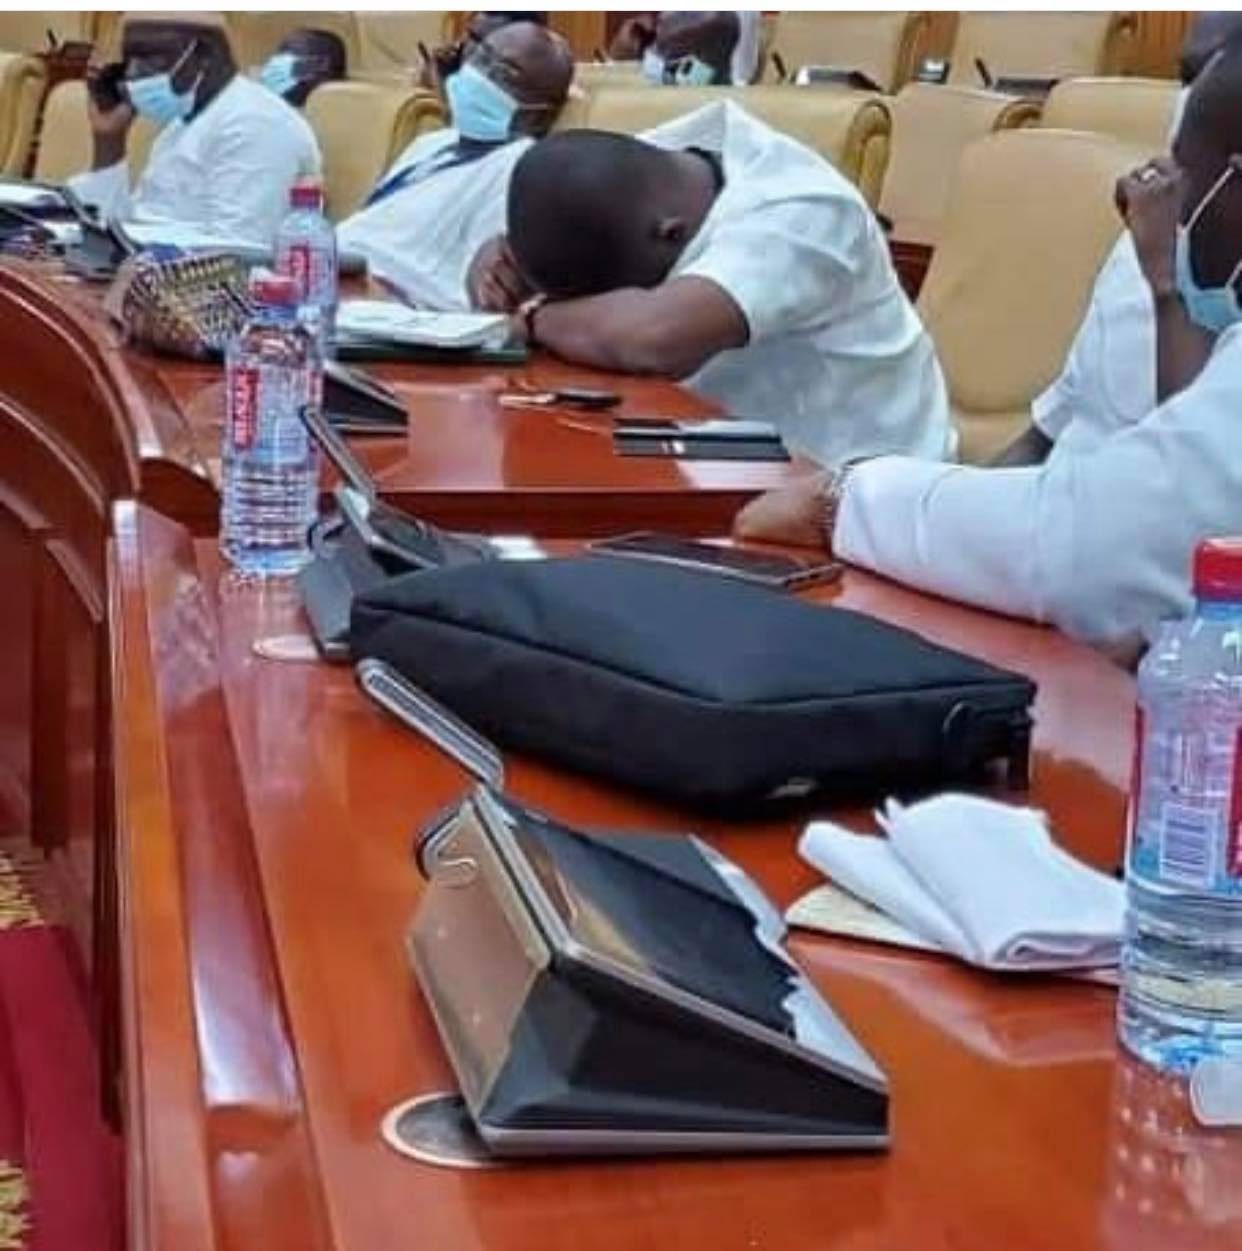 npp%2Bmps3 - Photos Of NPP MP Sleeping In Parliament After Reporting 4am To Take Over Majority Seat Pops Up